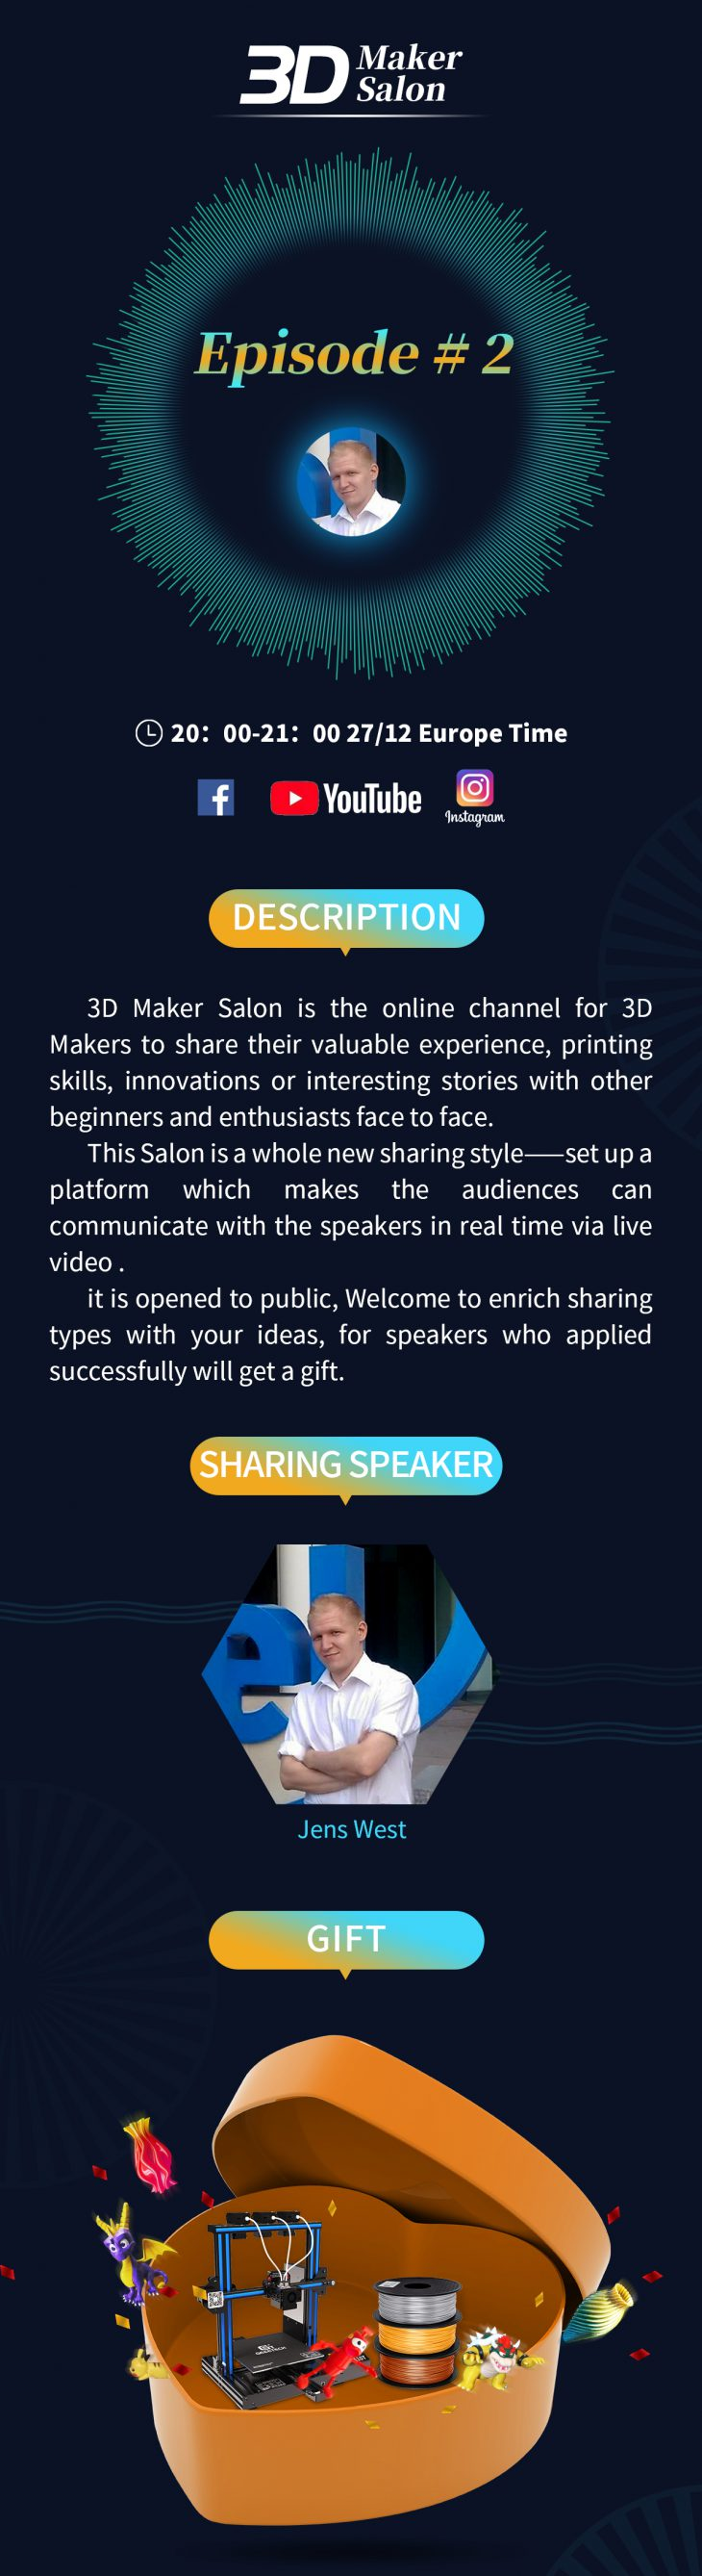 Geeetech 3D Maker Salon episode 2